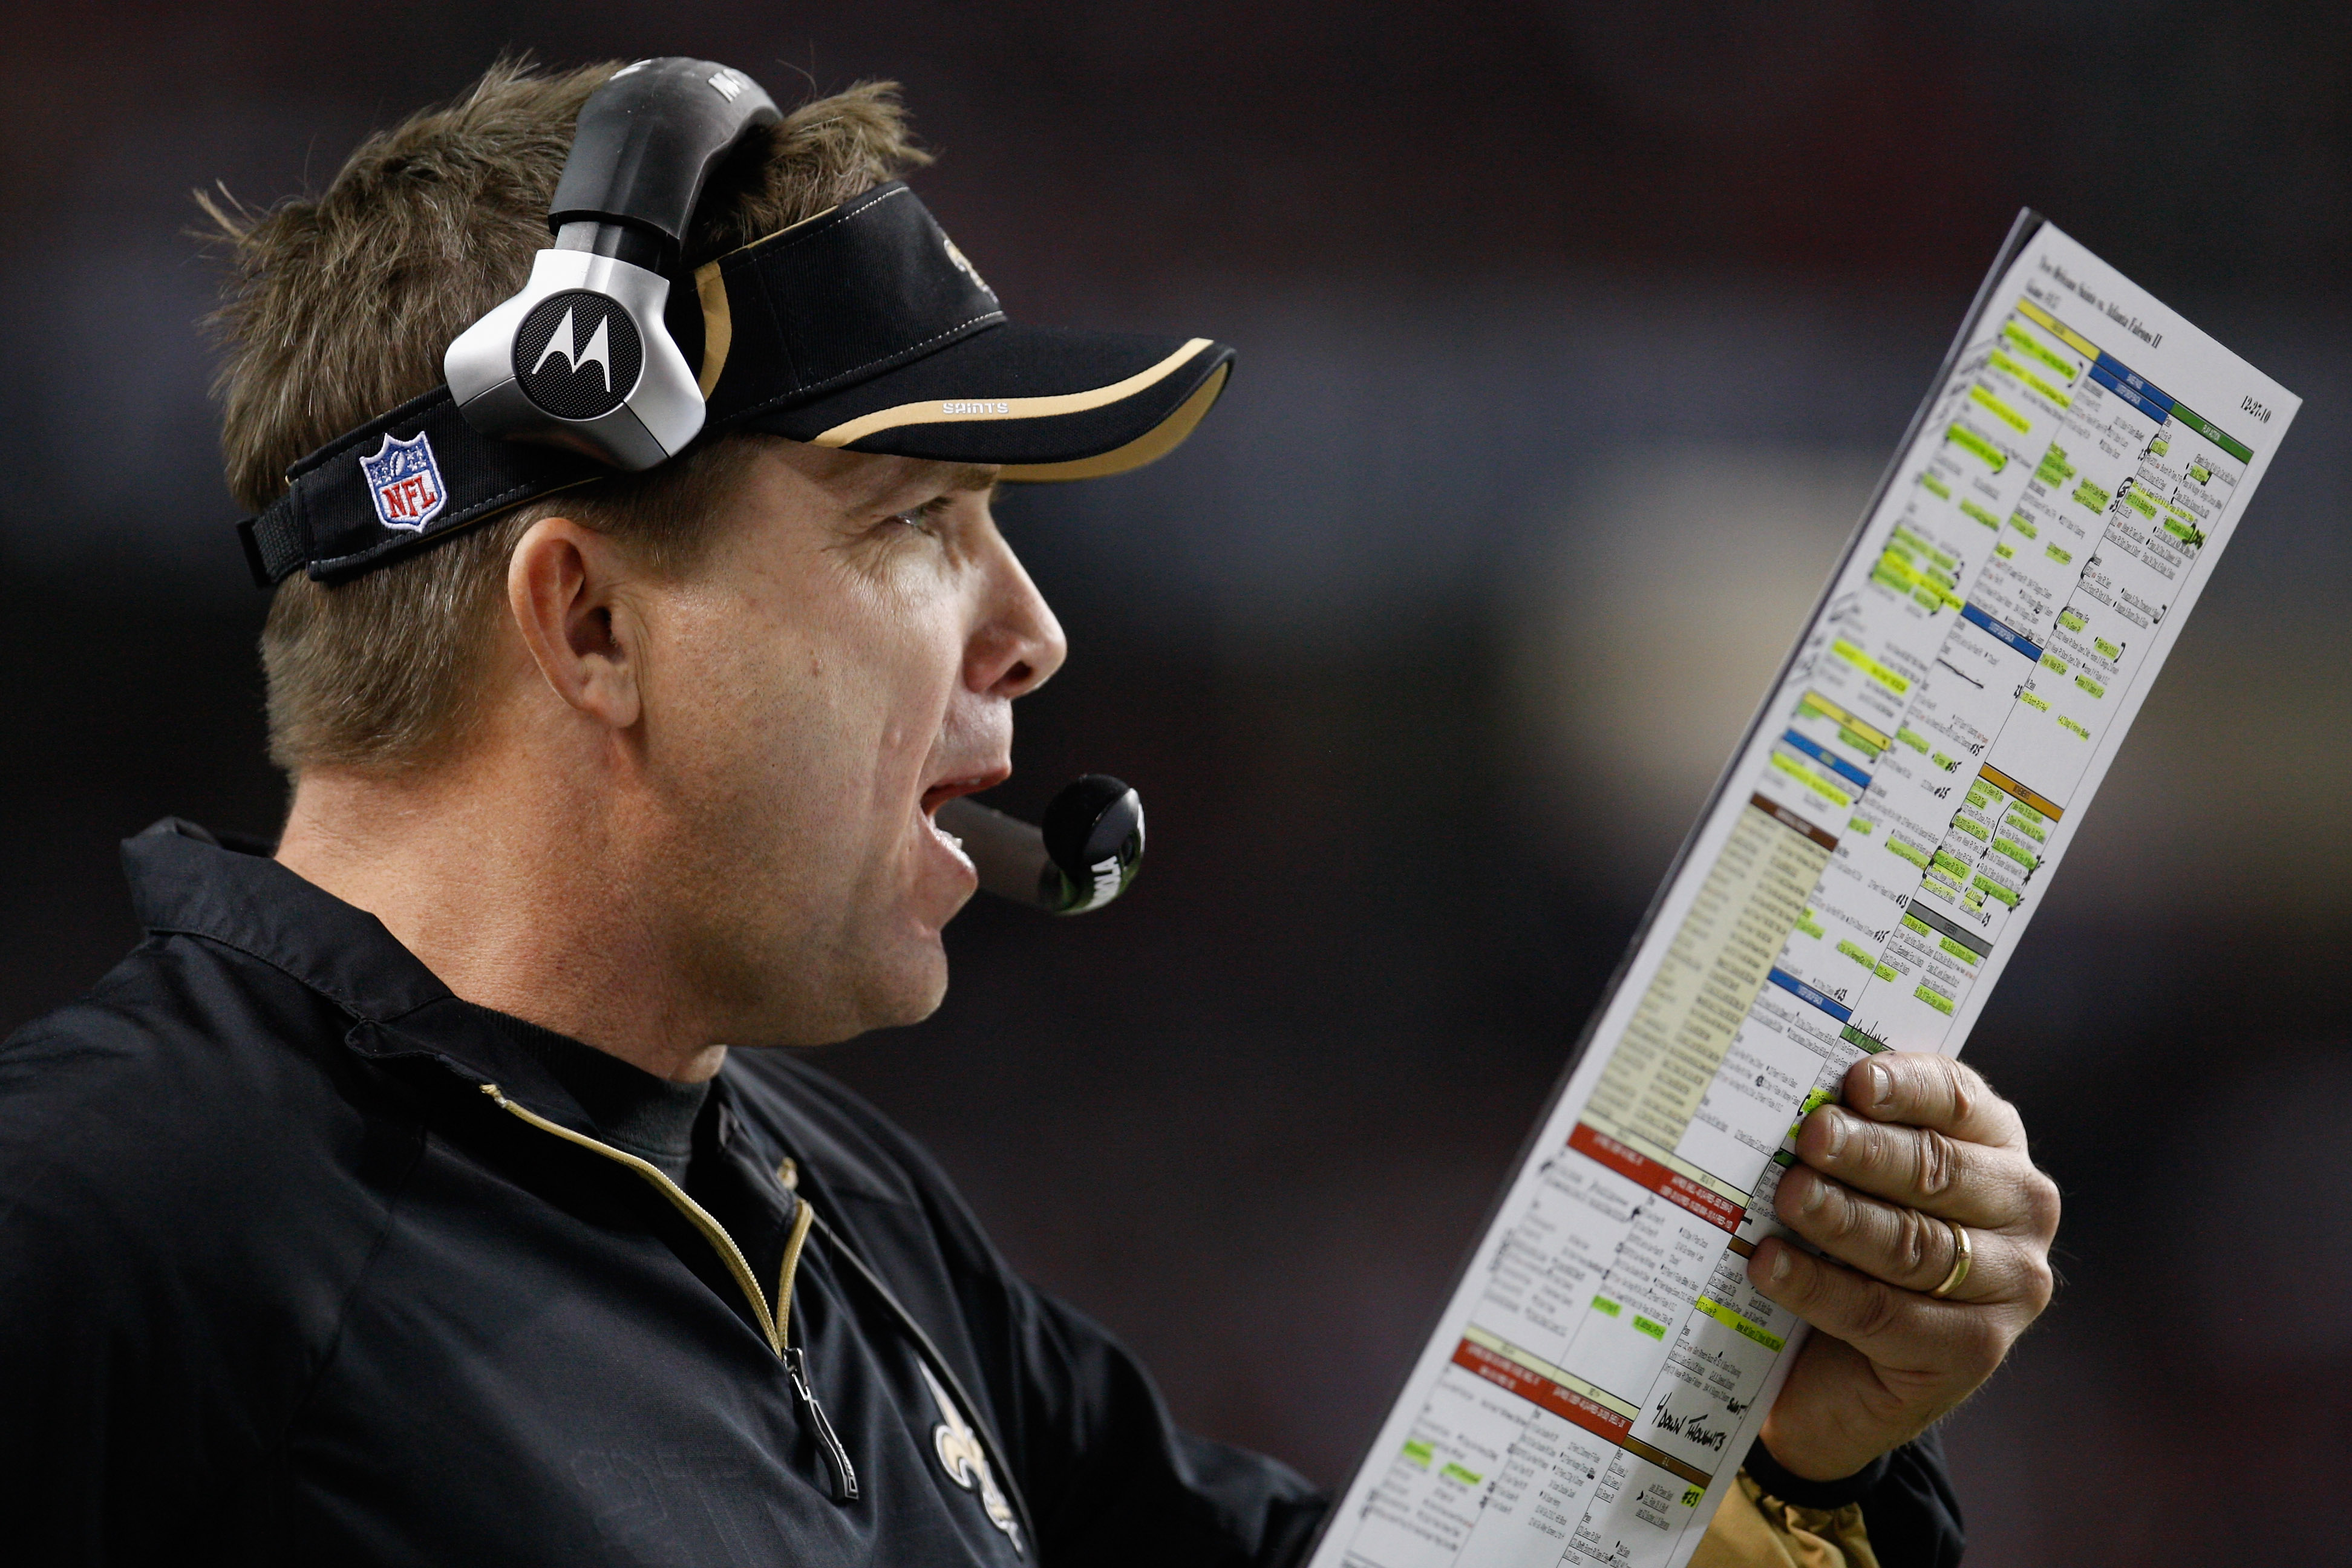 ATLANTA, GA - DECEMBER 27:  Head coach Sean Payton of the New Orleans Saints calls a play during the second half during the game against the Atlanta Falcons at the Georgia Dome on December 27, 2010 in Atlanta, Georgia.  (Photo by Scott Halleran/Getty Imag